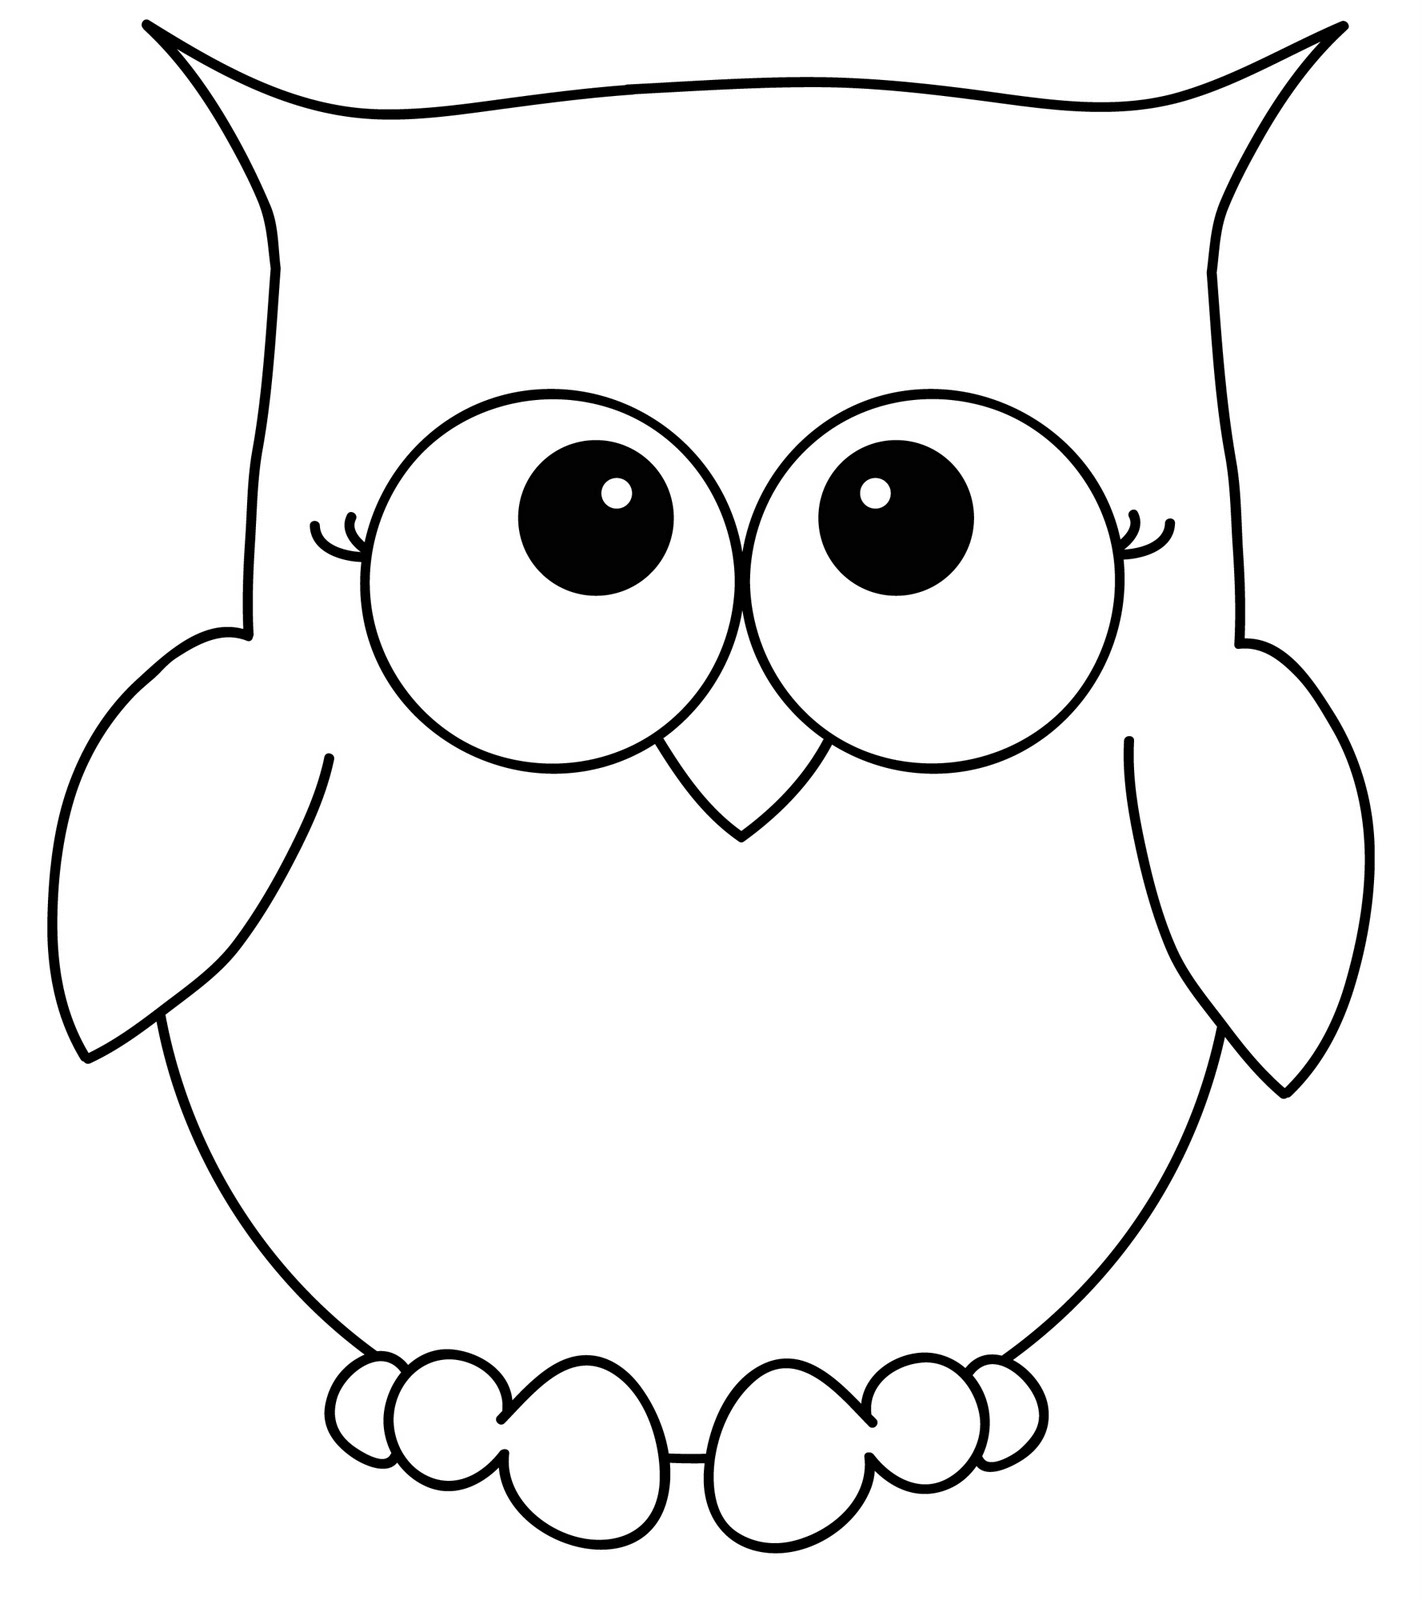 owl coloring picture download brown hawk owl coloring for free designlooter coloring picture owl